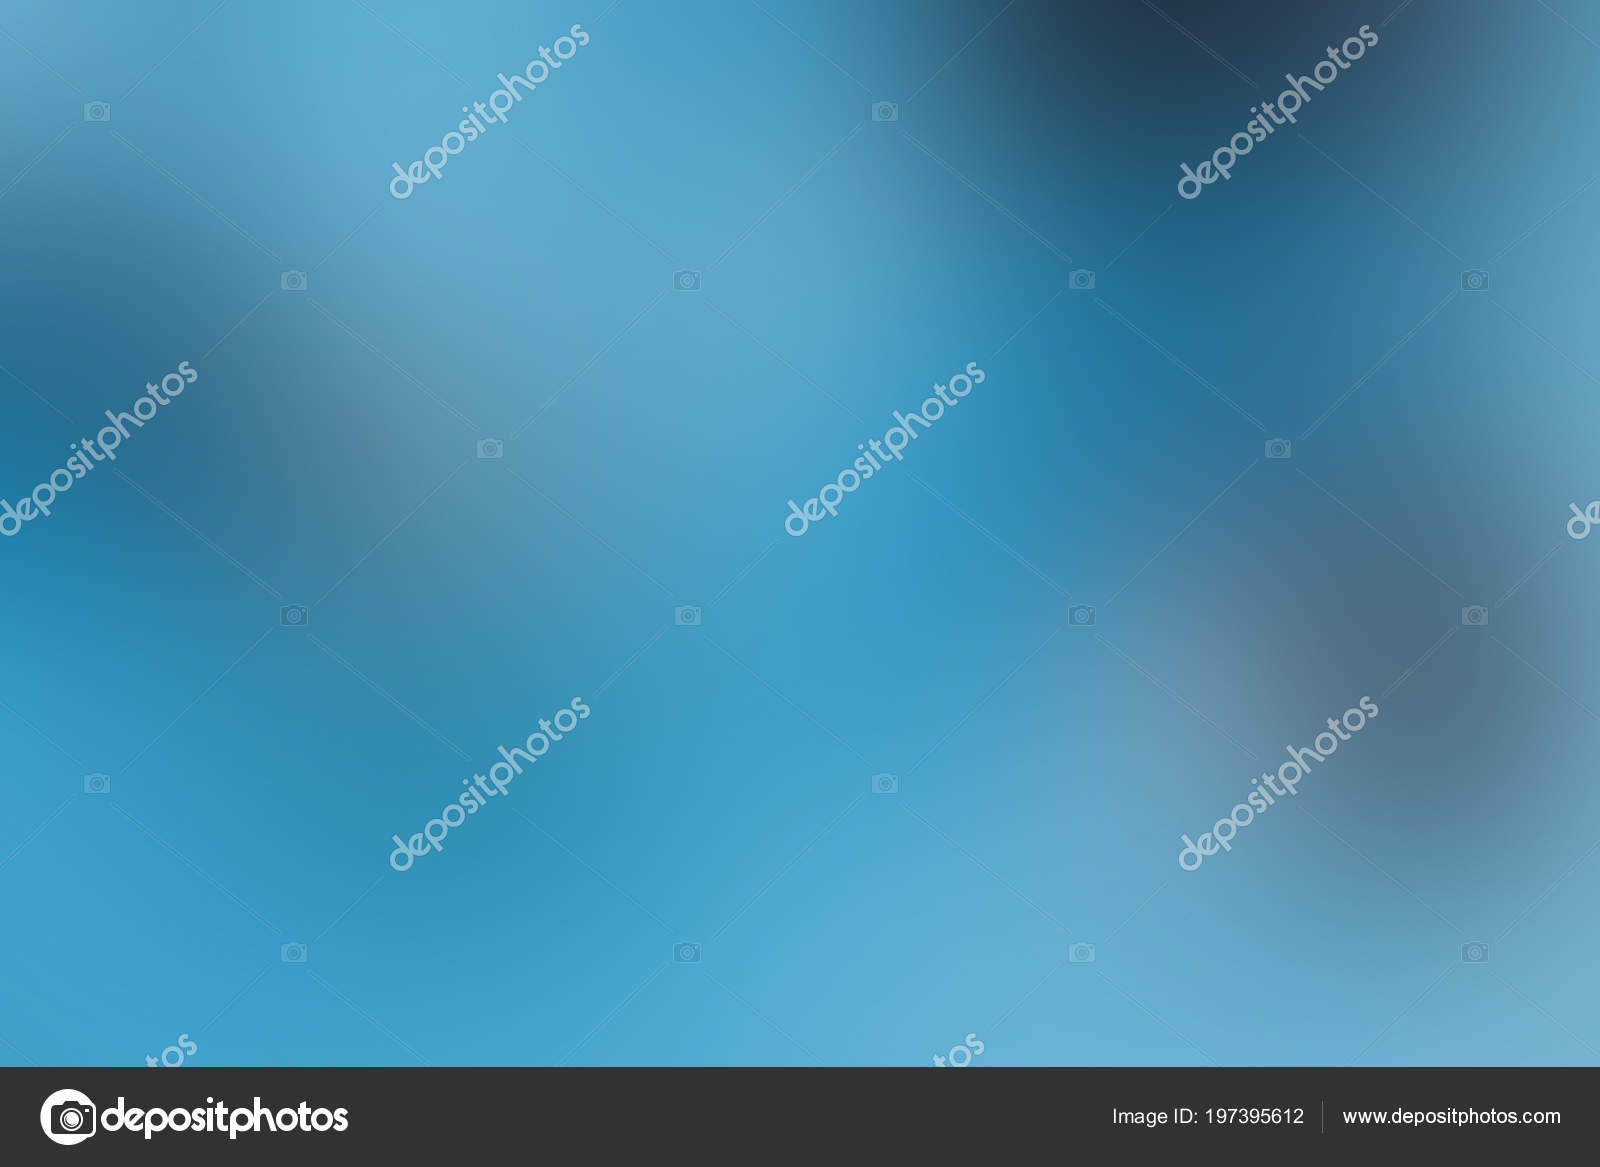 Gradient Background Blue Sky Ice Ink Blur Smooth Soft Wallpaper Stock Photo